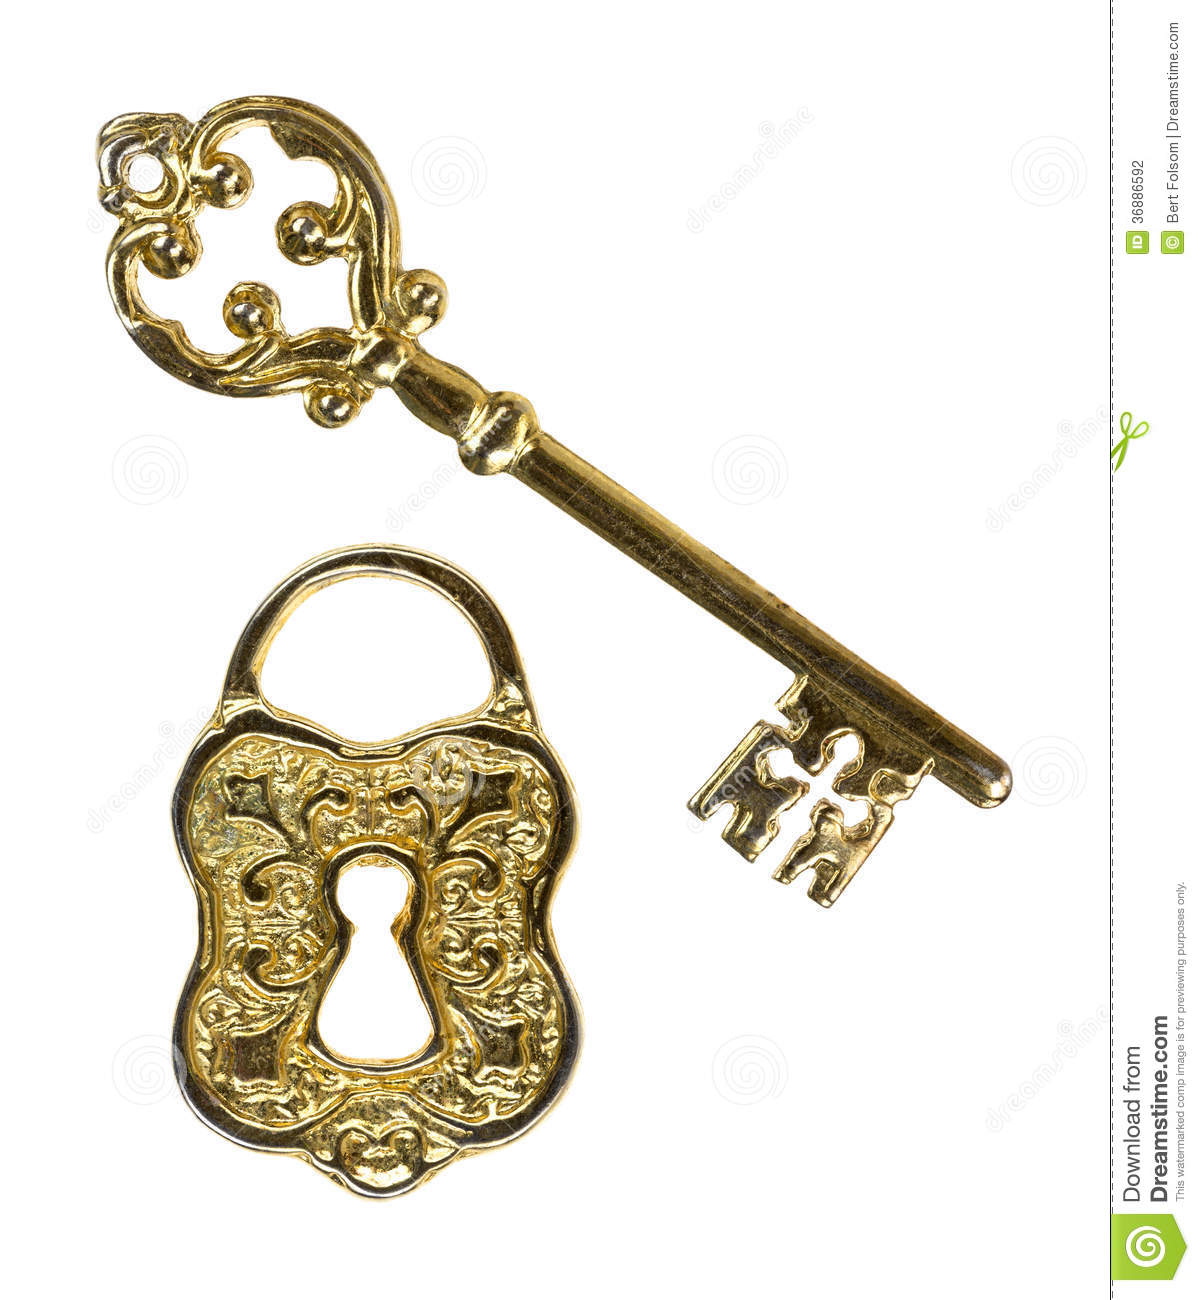 An ornate skeleton key and a lock face on a white background.